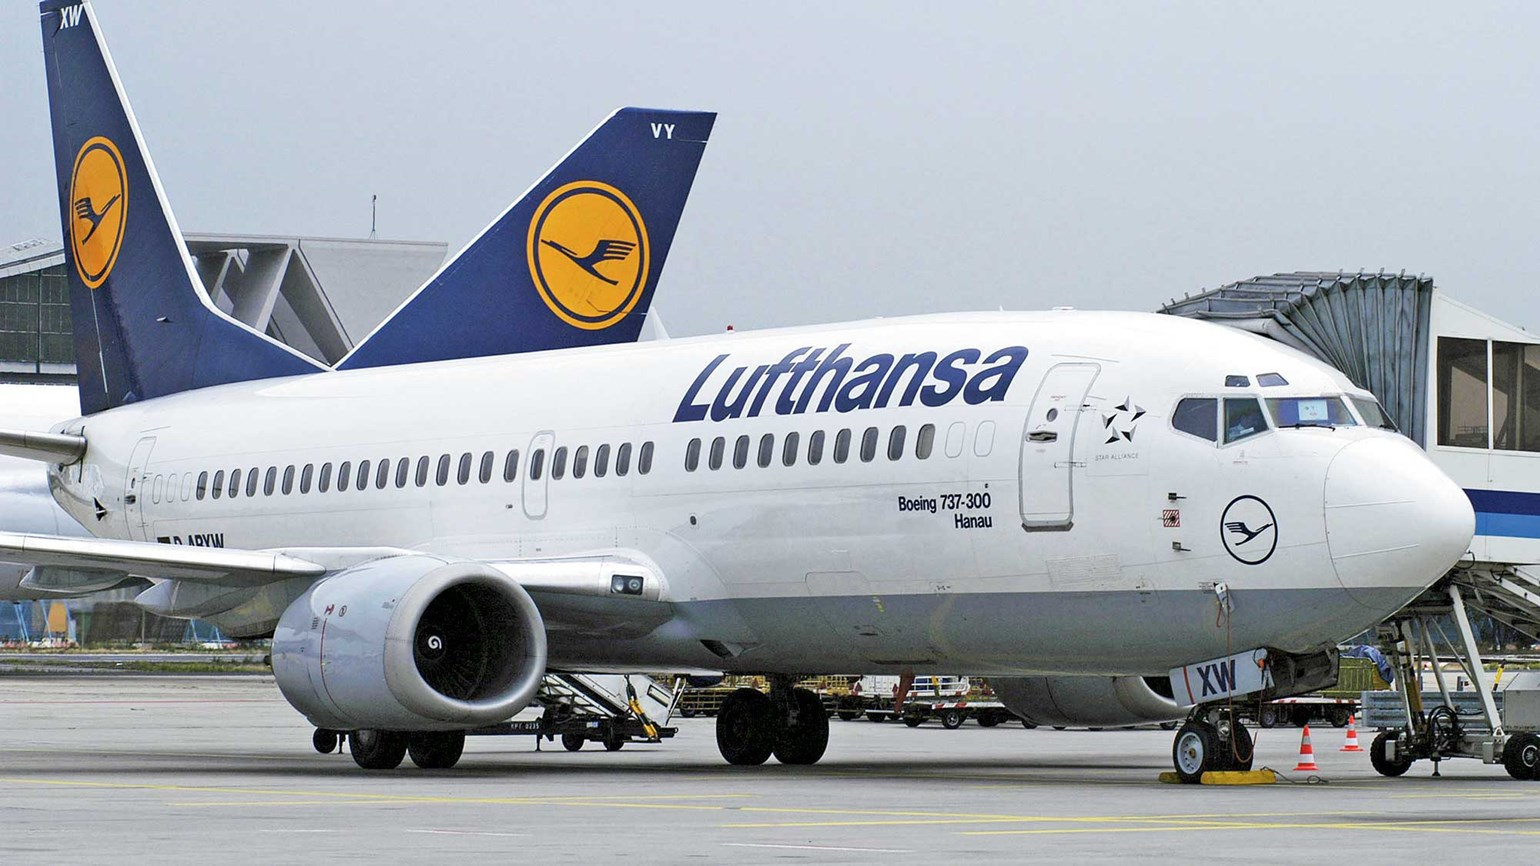 Lufthansa disputes report that GDS bookings are way down